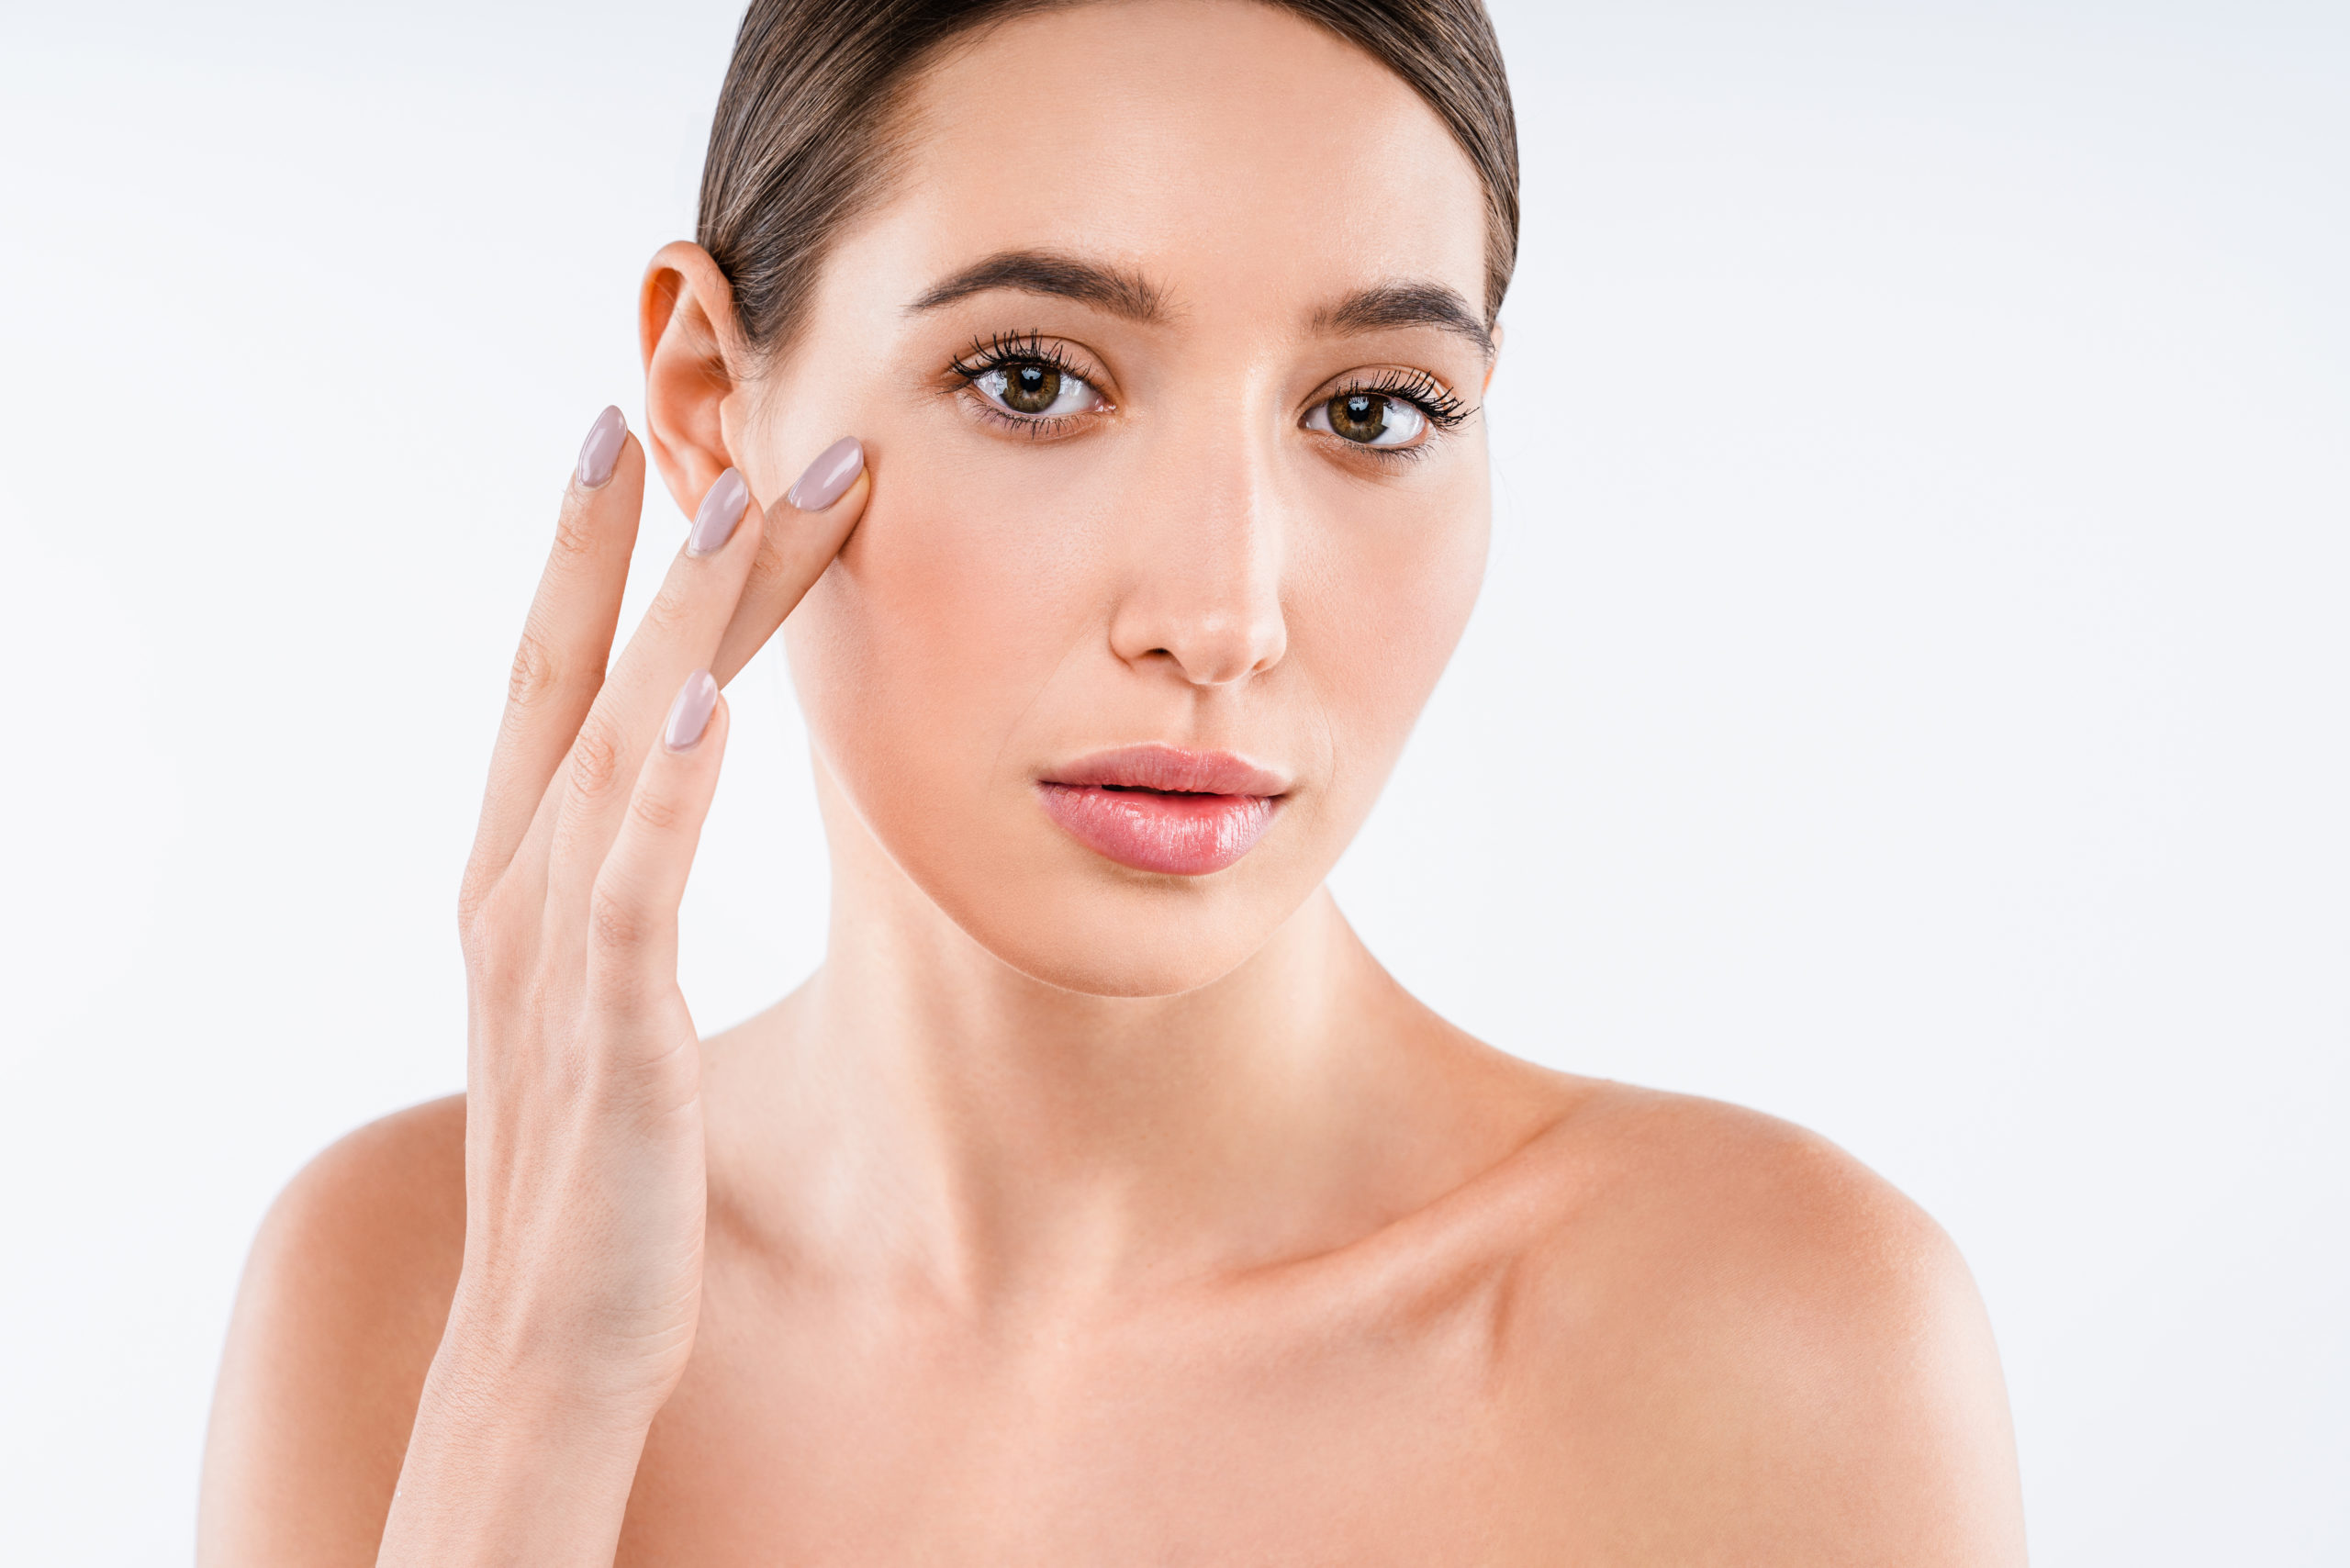 Are you washing your face too often? Twice per day is enough